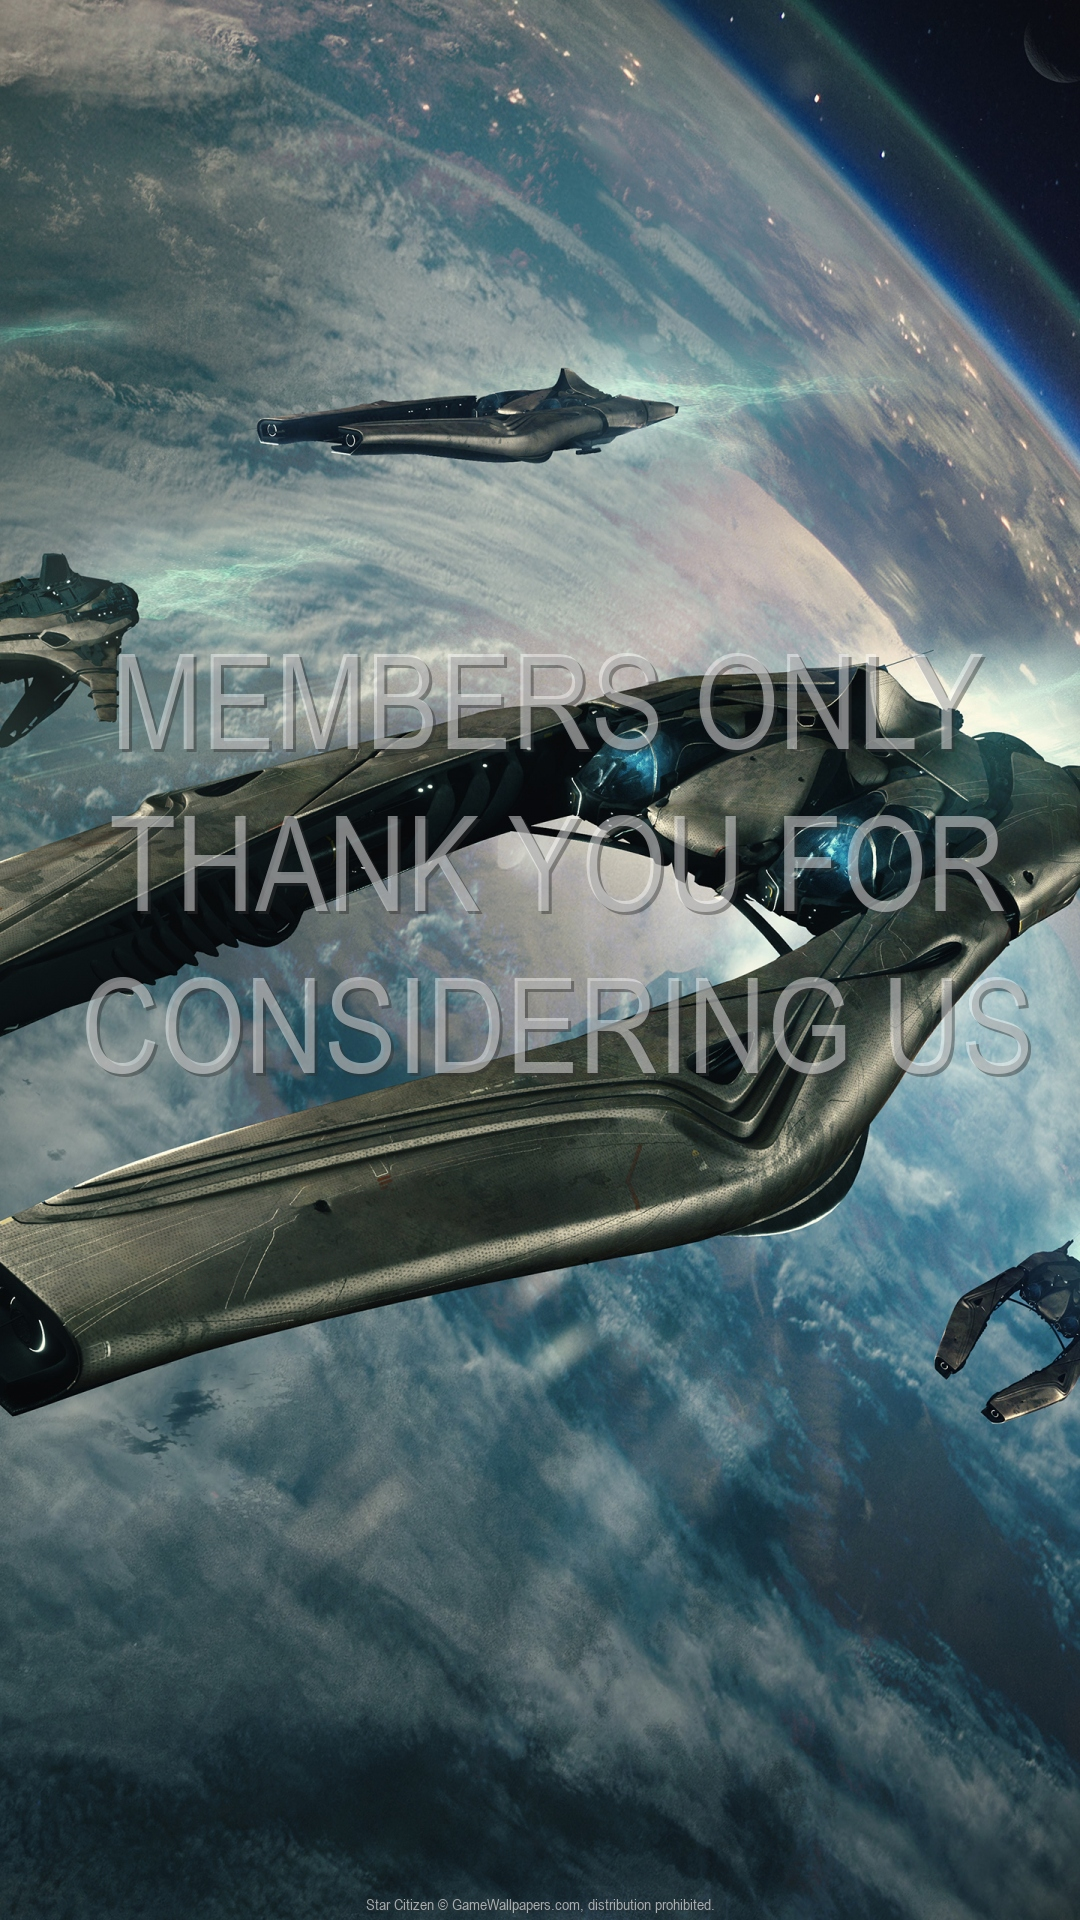 Star Citizen 1920x1080 Mobile fond d'écran 63